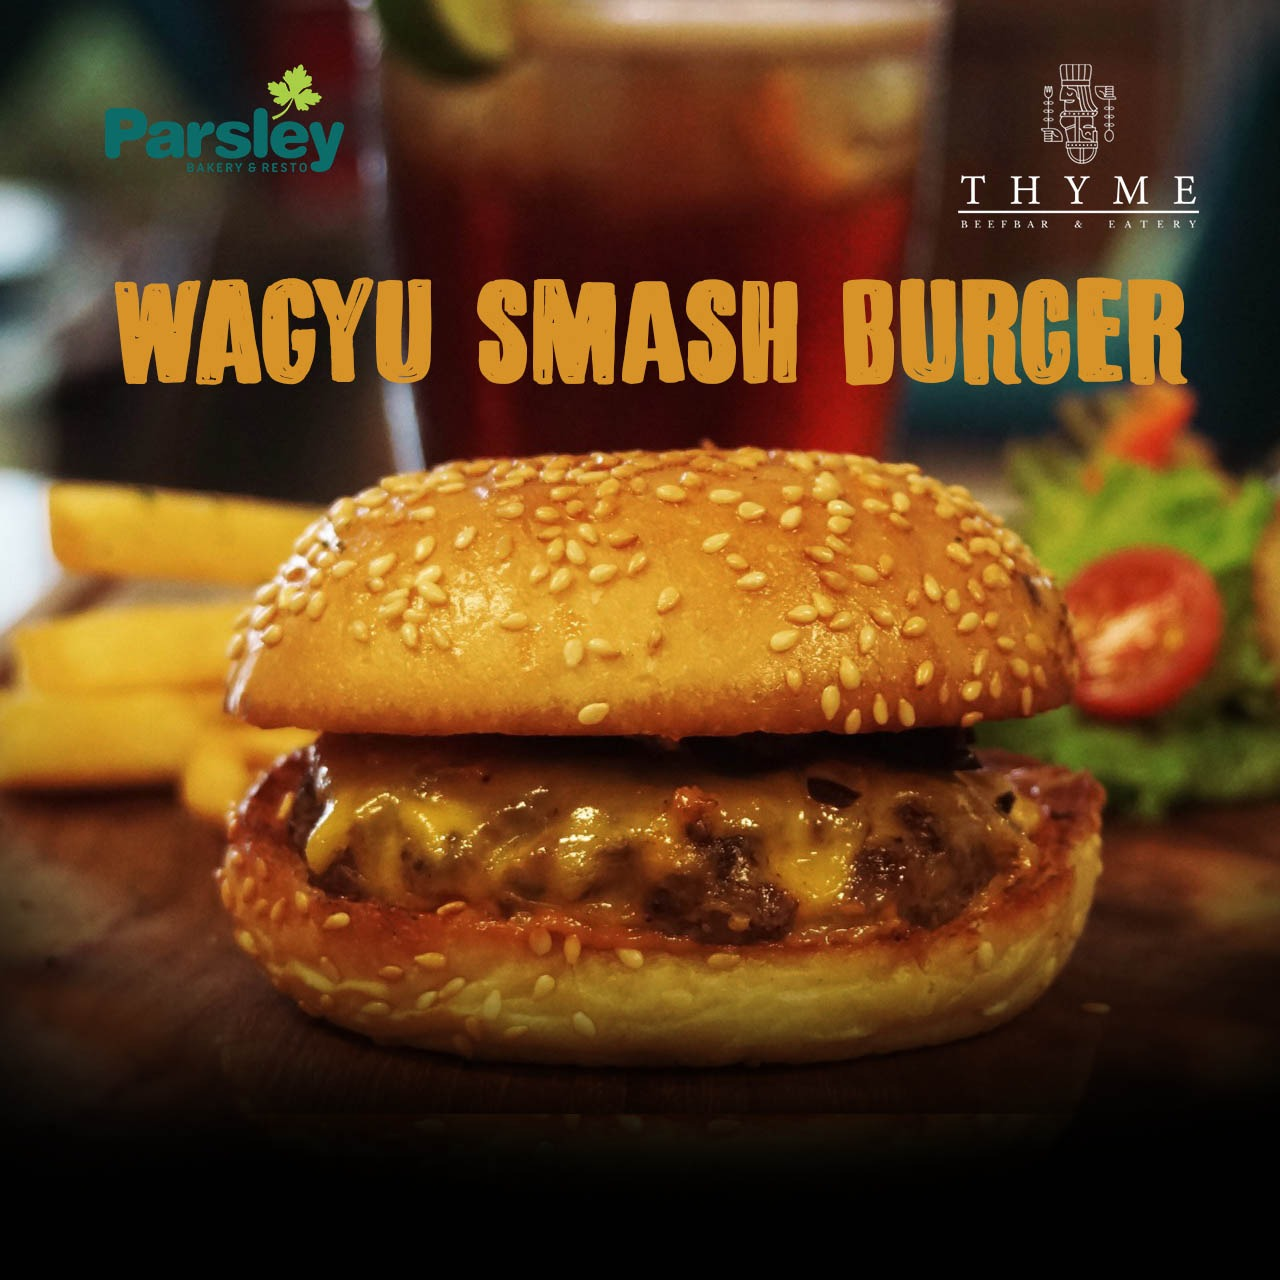 WAGYU SMASH BURGER